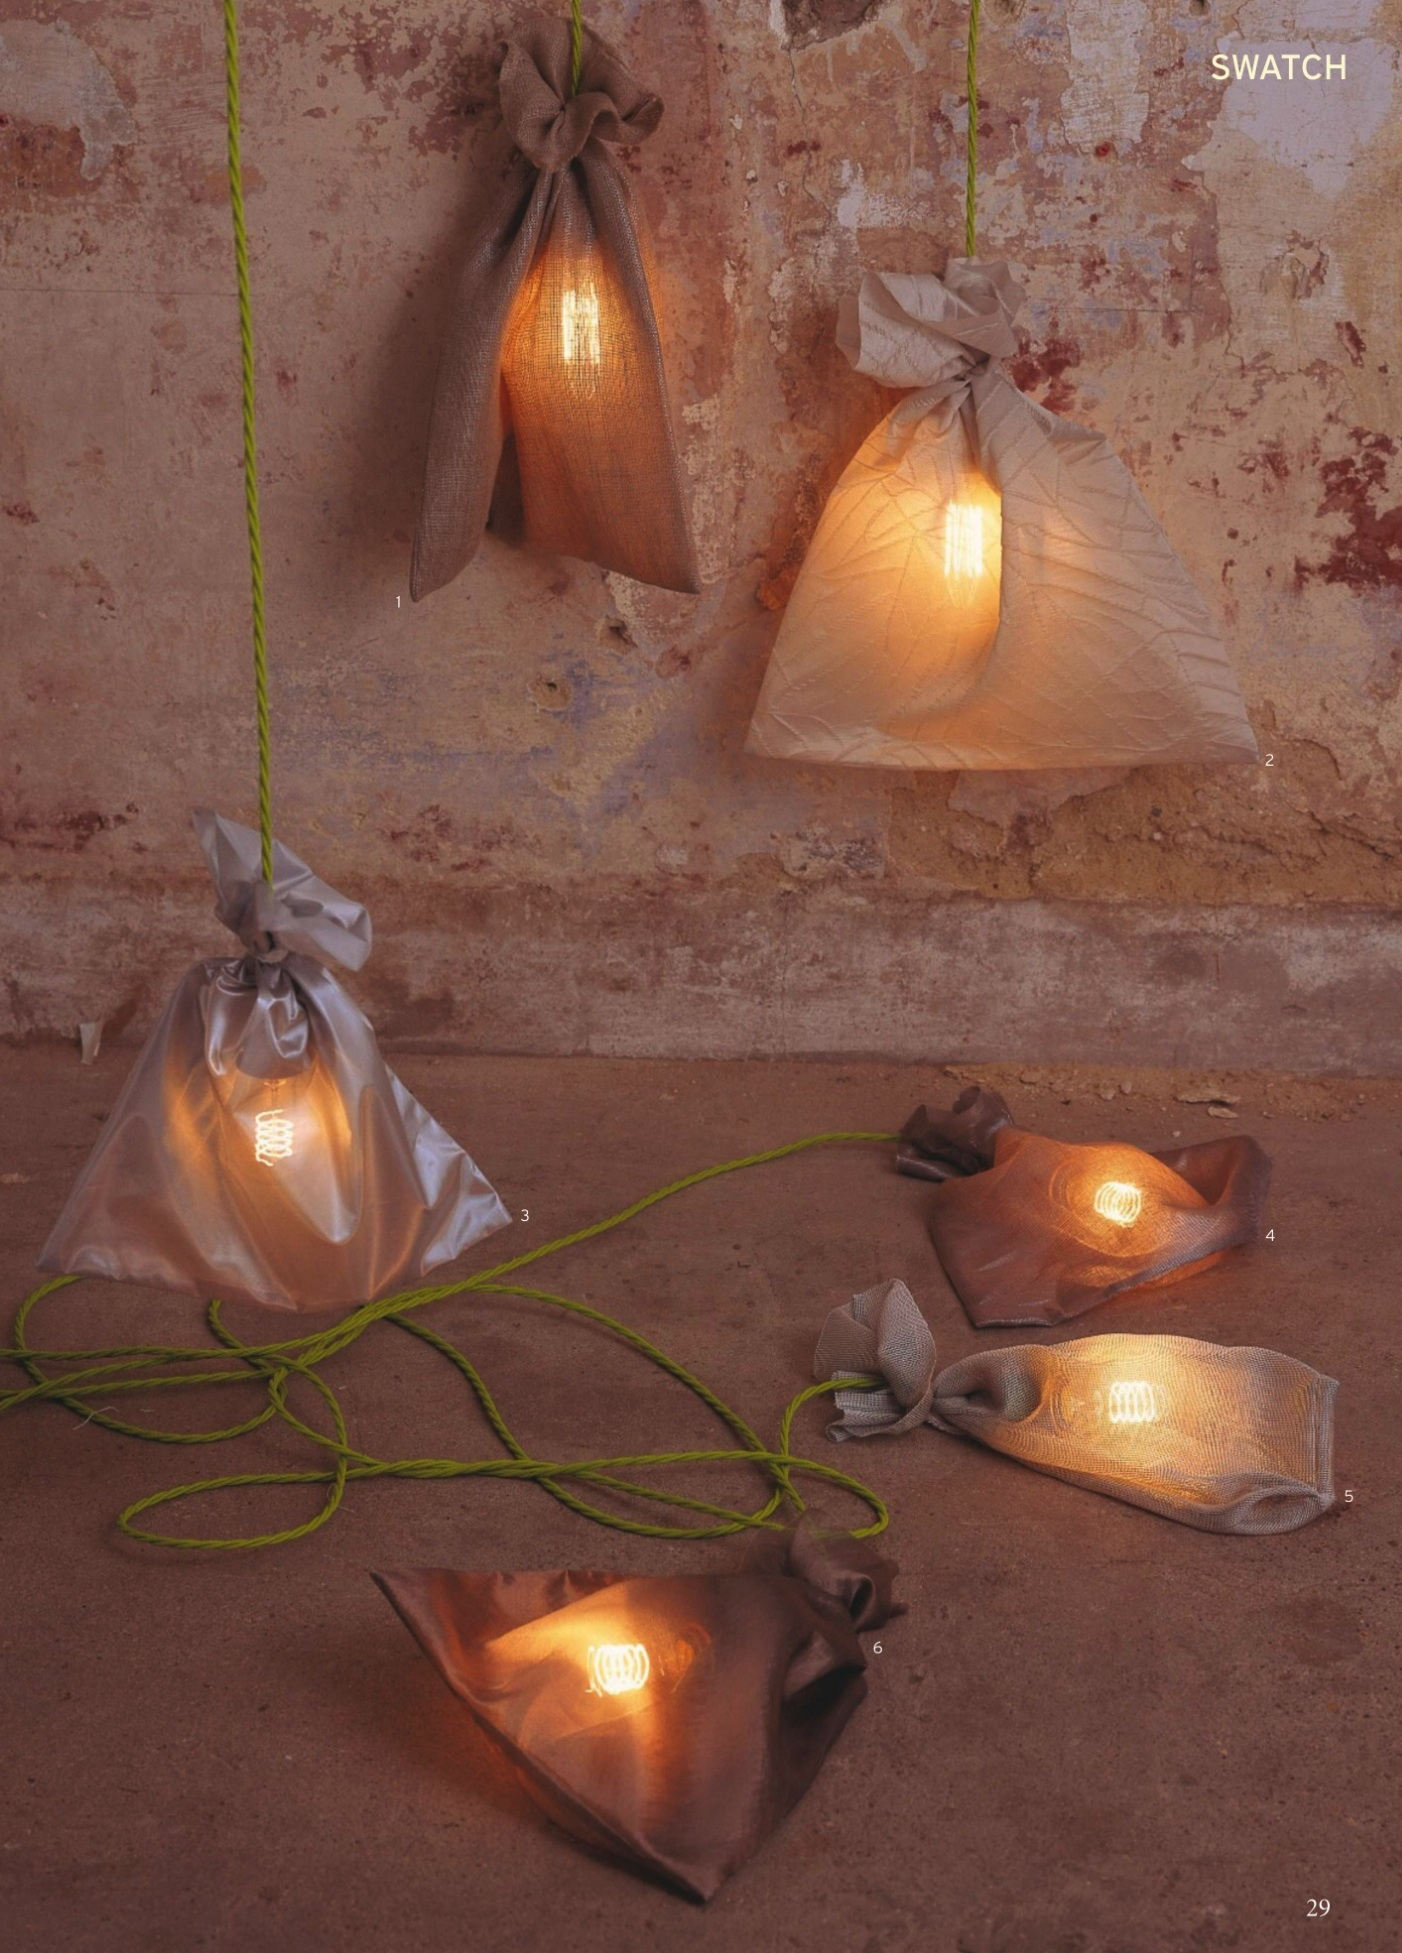 vintage filament light bulbs wrapped in fabric